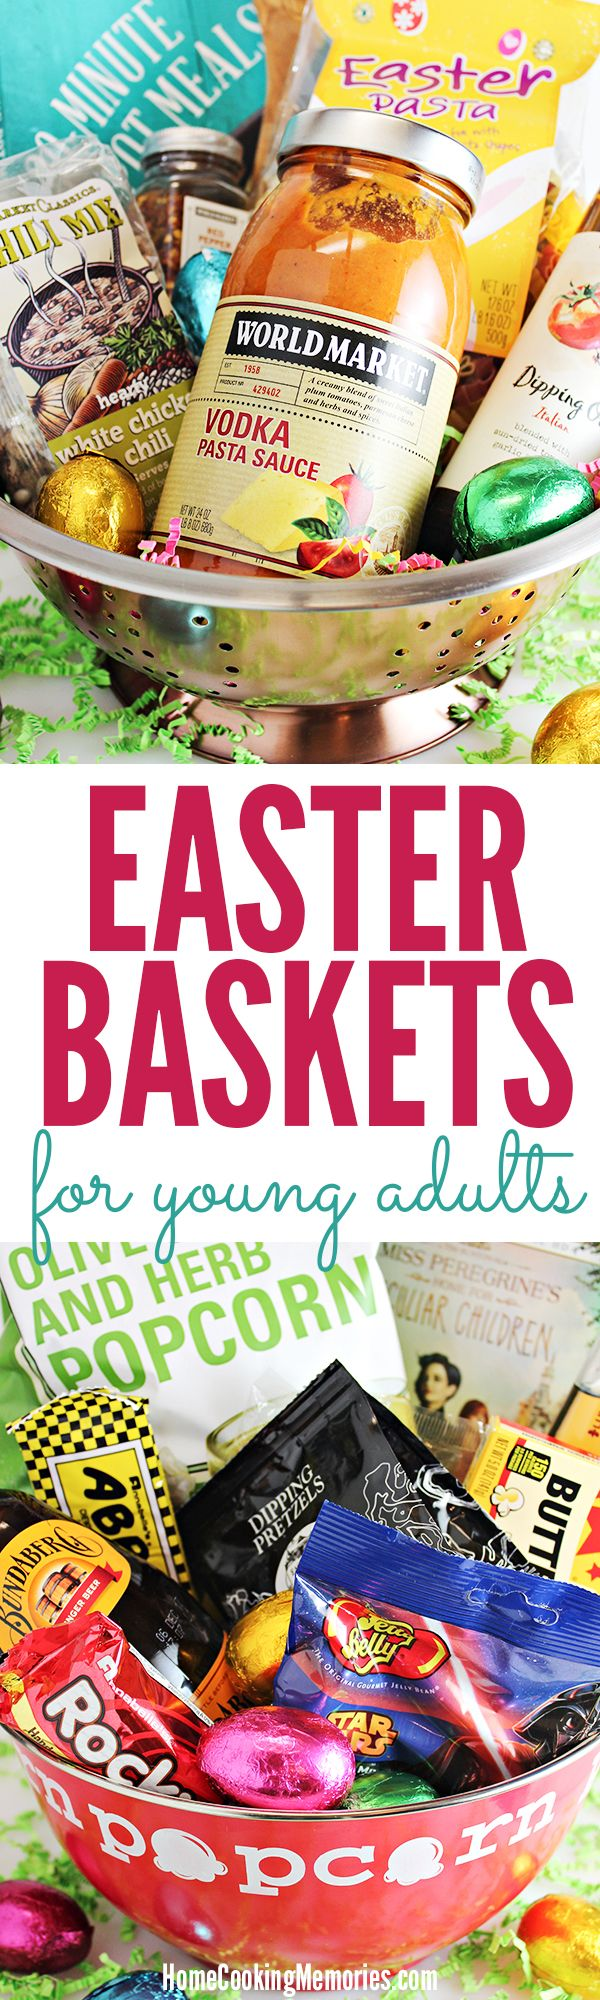 3 easter basket ideas for young adults or older teens basket tips inspiration for creating diy easter basket ideas for young adults or older teens negle Choice Image